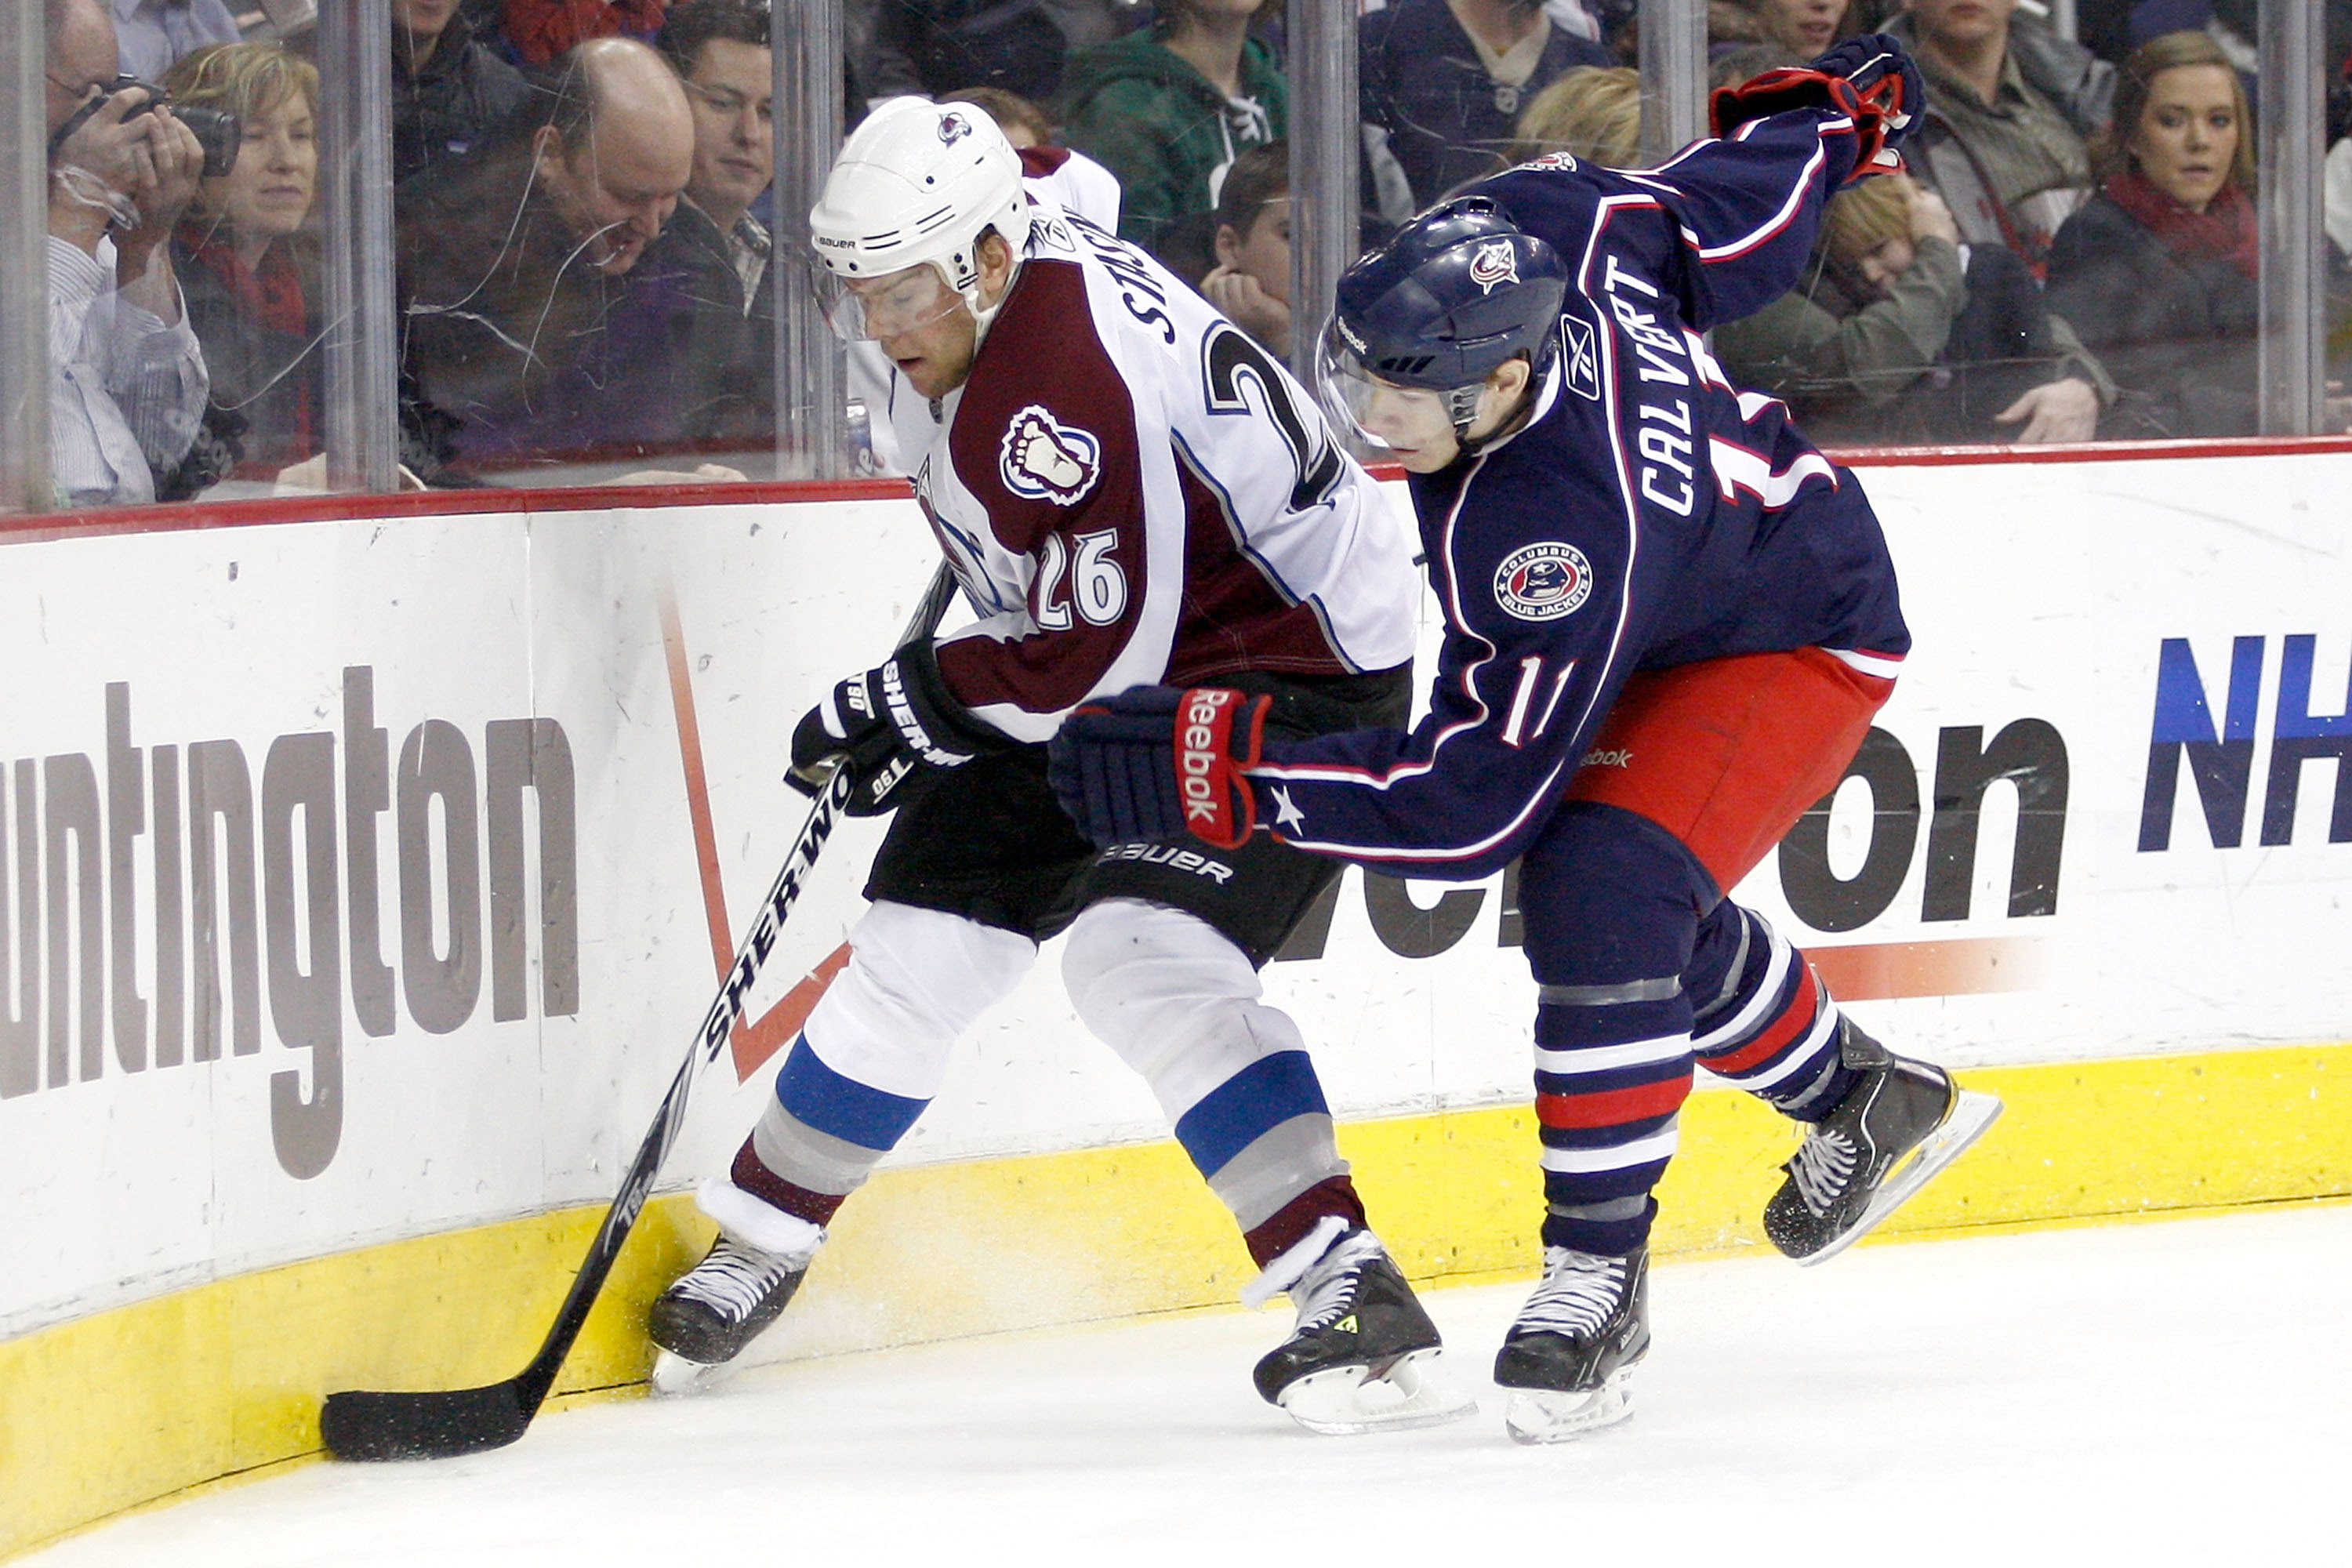 COLUMBUS, OH - FEBRUARY 11:  Paul Stastny #26 of the Colorado Avalanche is checked by Matt Calvert #11 of the Columbus Blue Jackets on February 11, 2011 at Nationwide Arena in Columbus, Ohio. (Photo by John Grieshop/Getty Images)